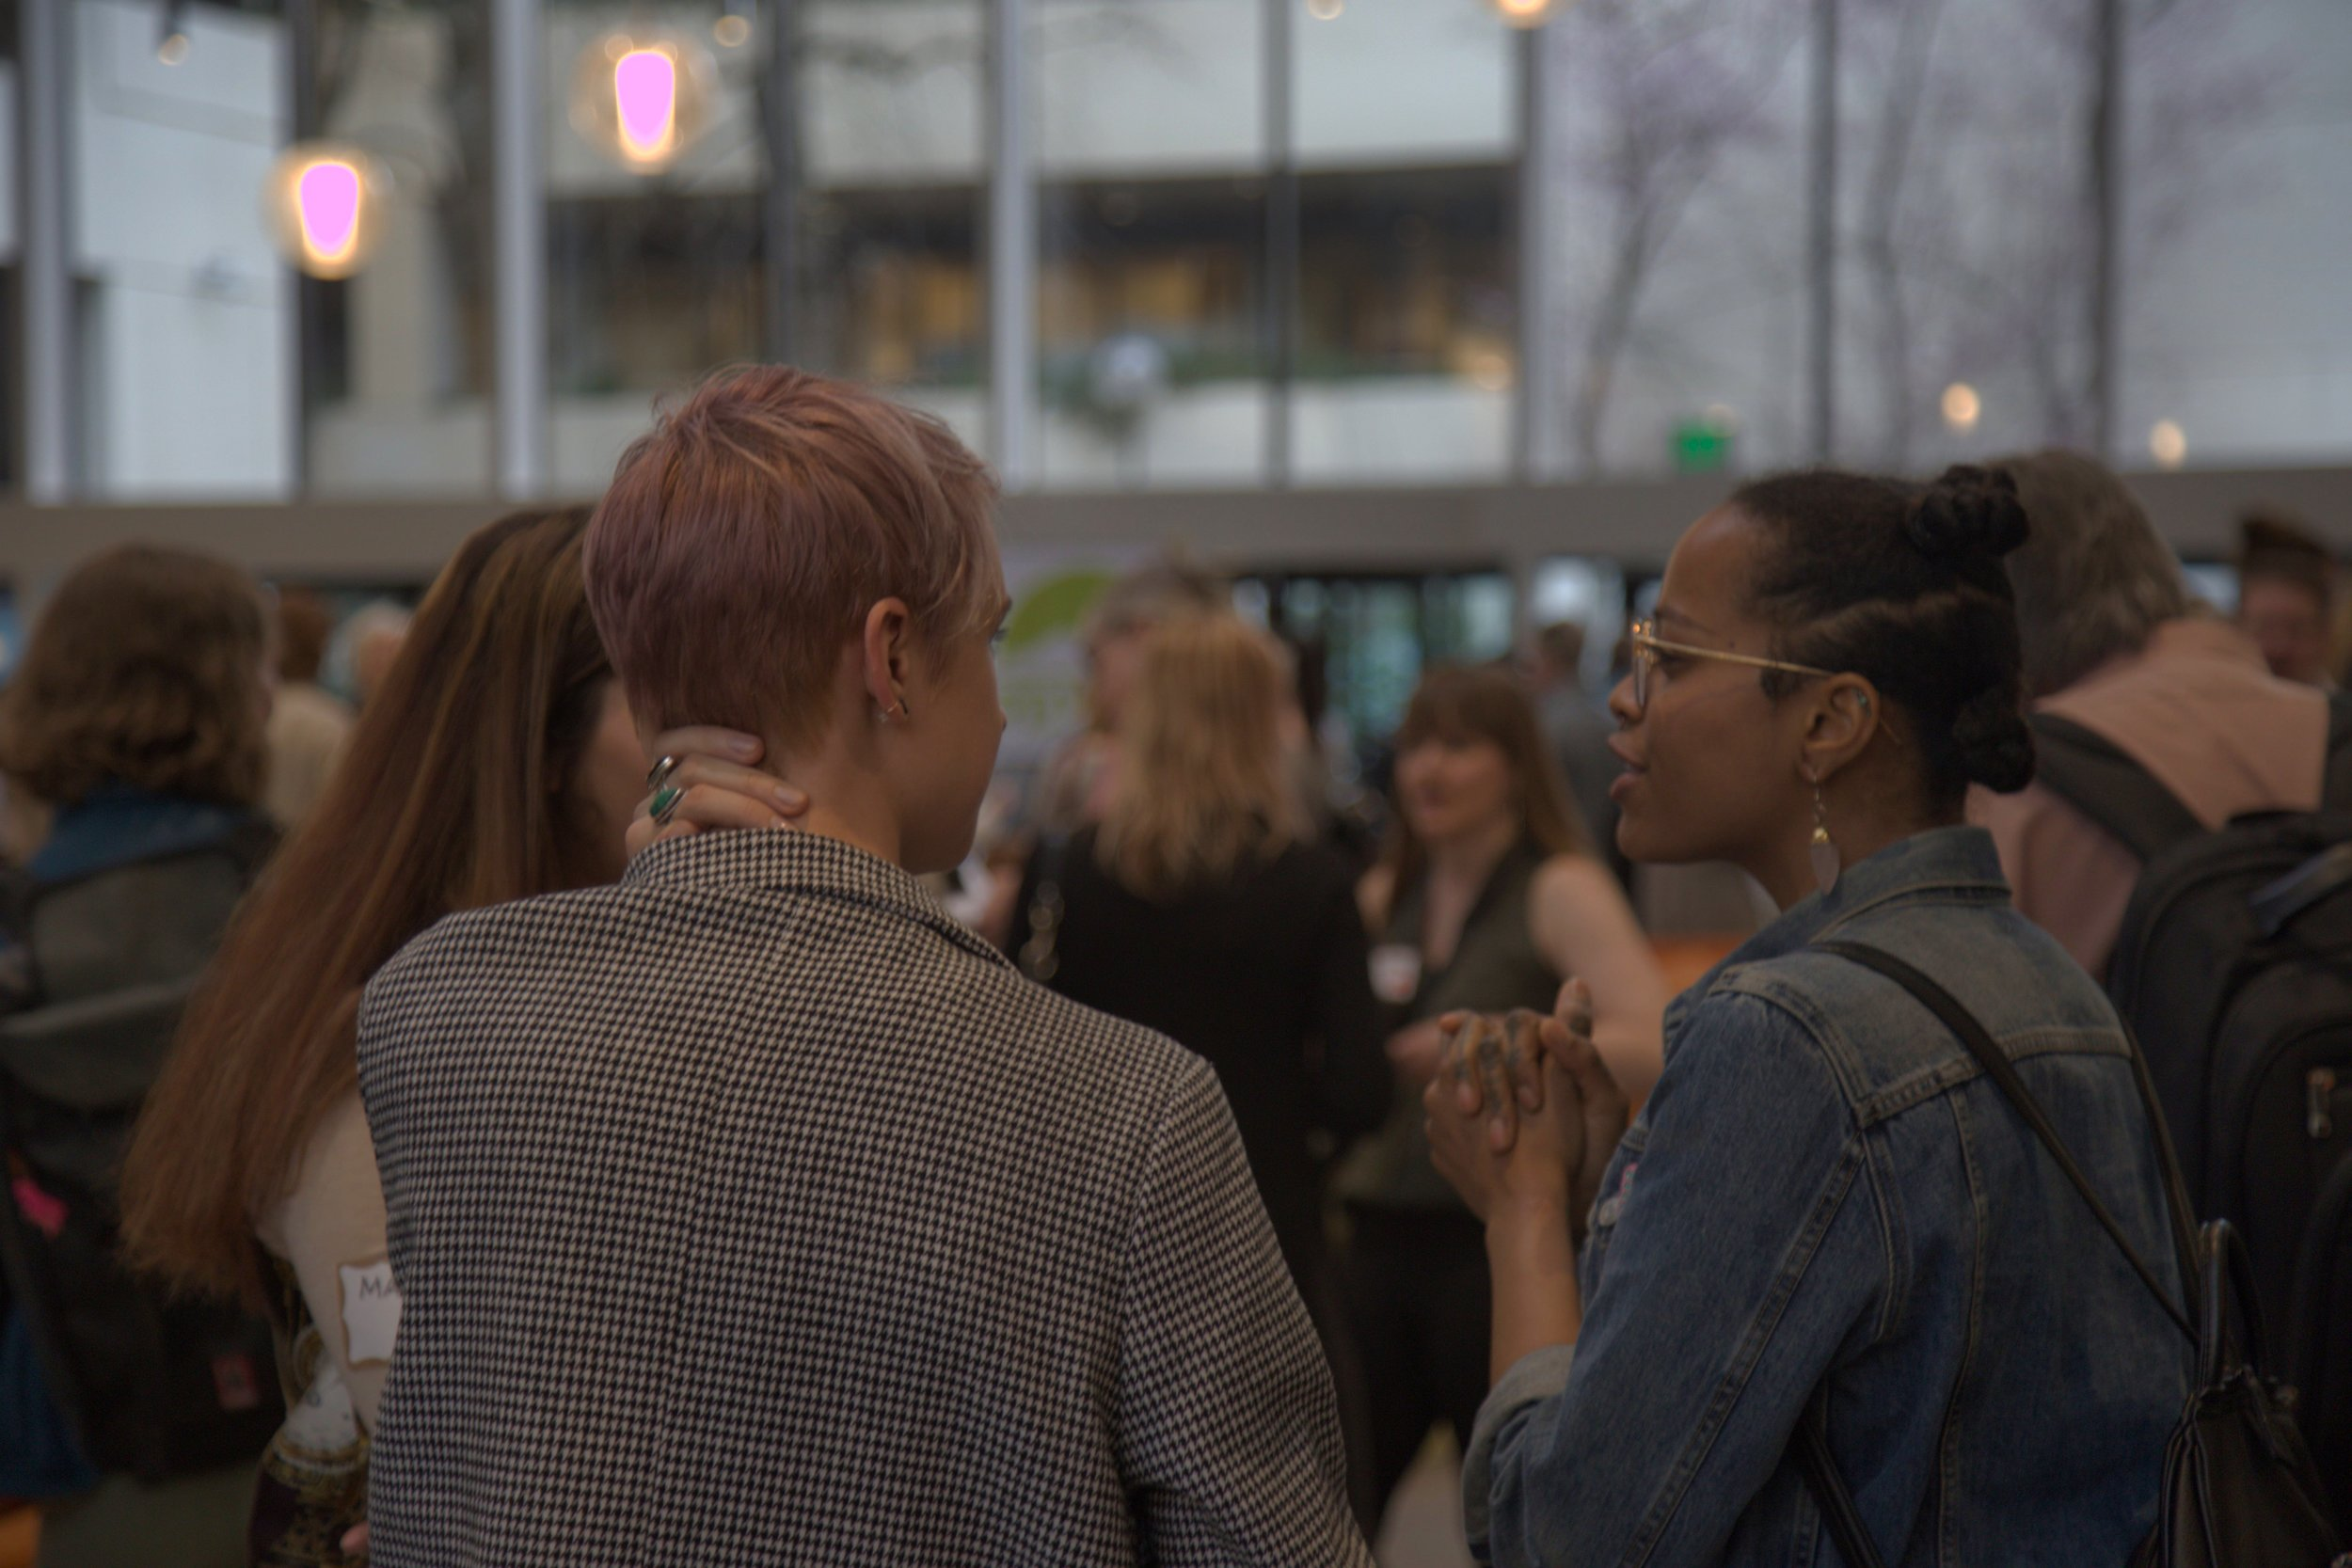 PDXWIT March Happy Hour @ Cambia Health, 3/19/19, Attendees mingle